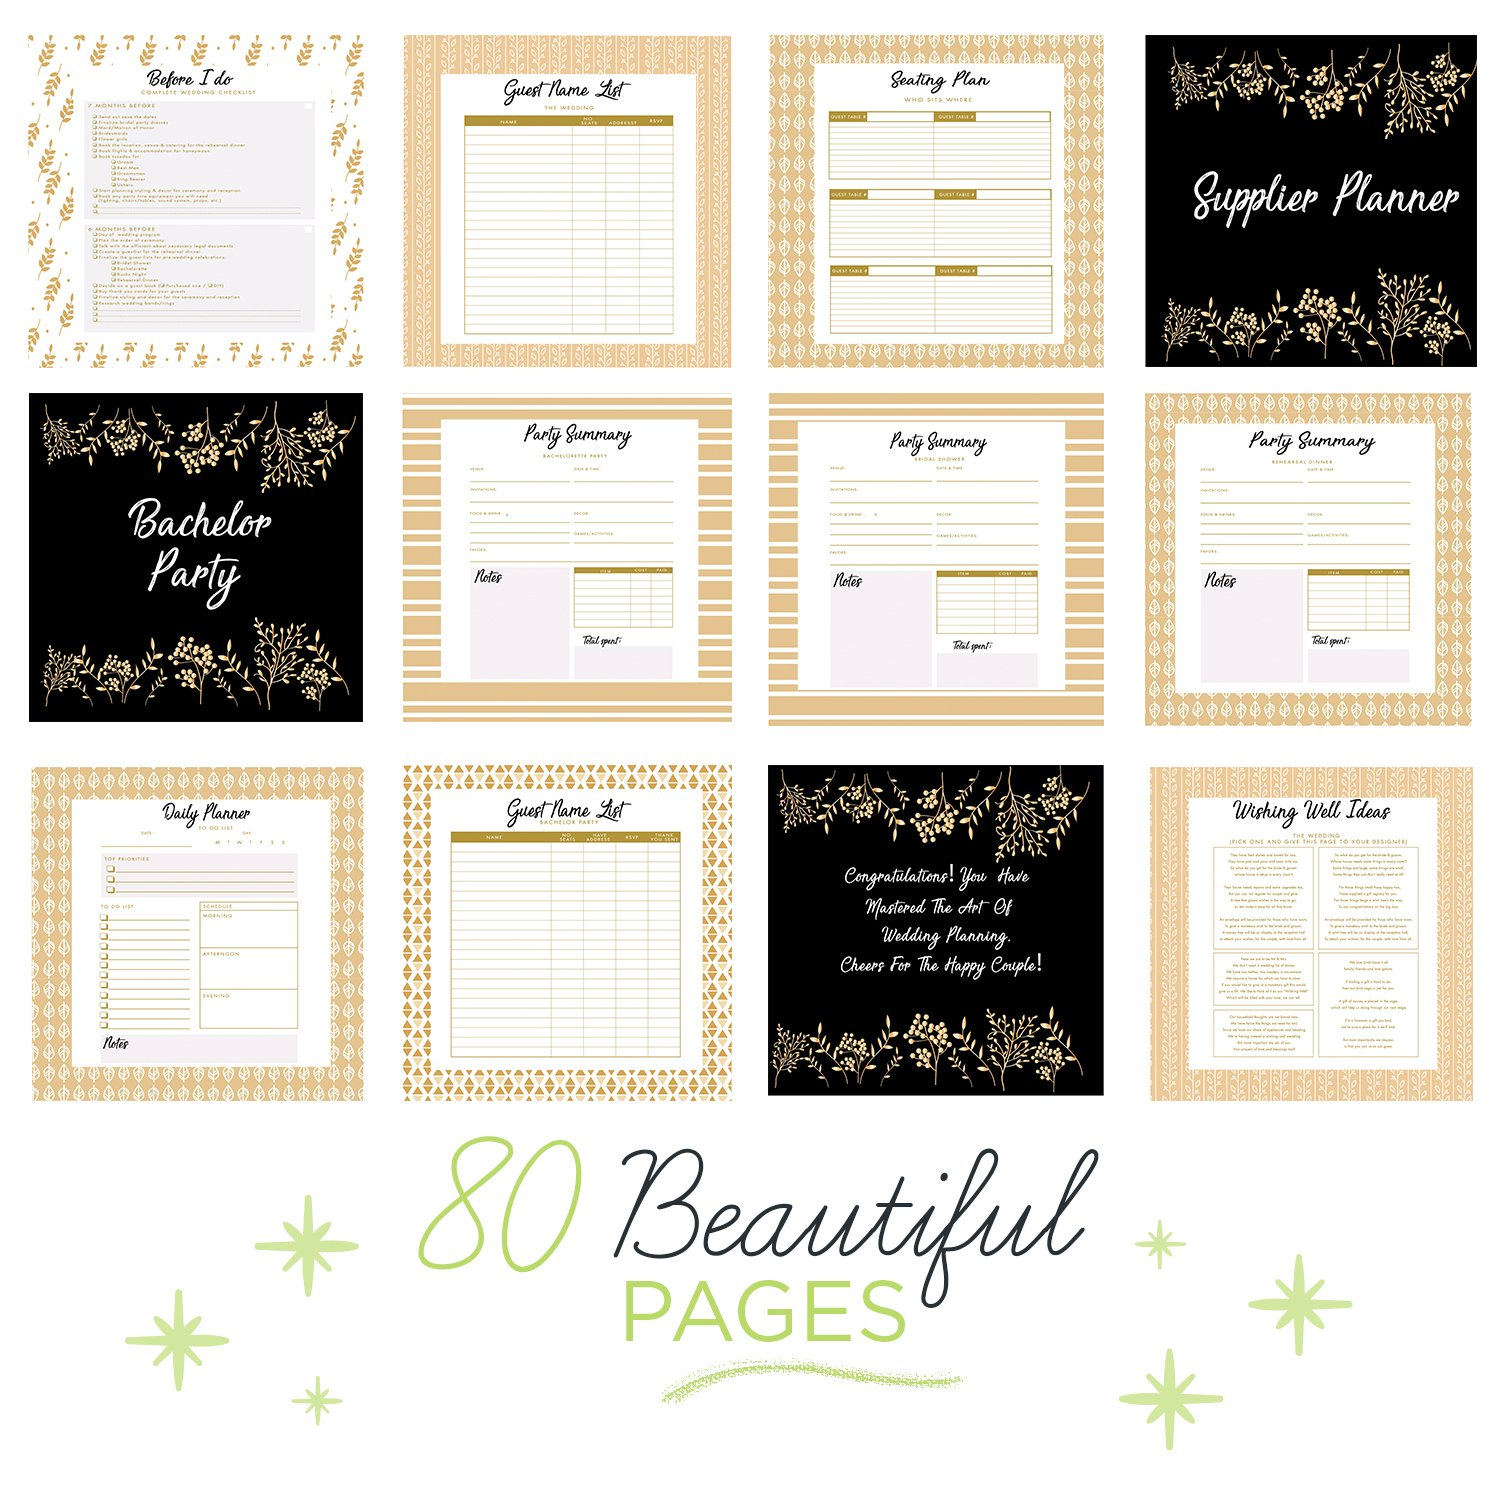 The Ultimate Wedding Planner – A Complete 80 Pages Hardcover Organizer that Includes Checklists, Party Planner, Budget Organizer, Honeymoon and More to Help You Organize The Wedding of Your Dreams! by Unconditional Rosie (Image #4)